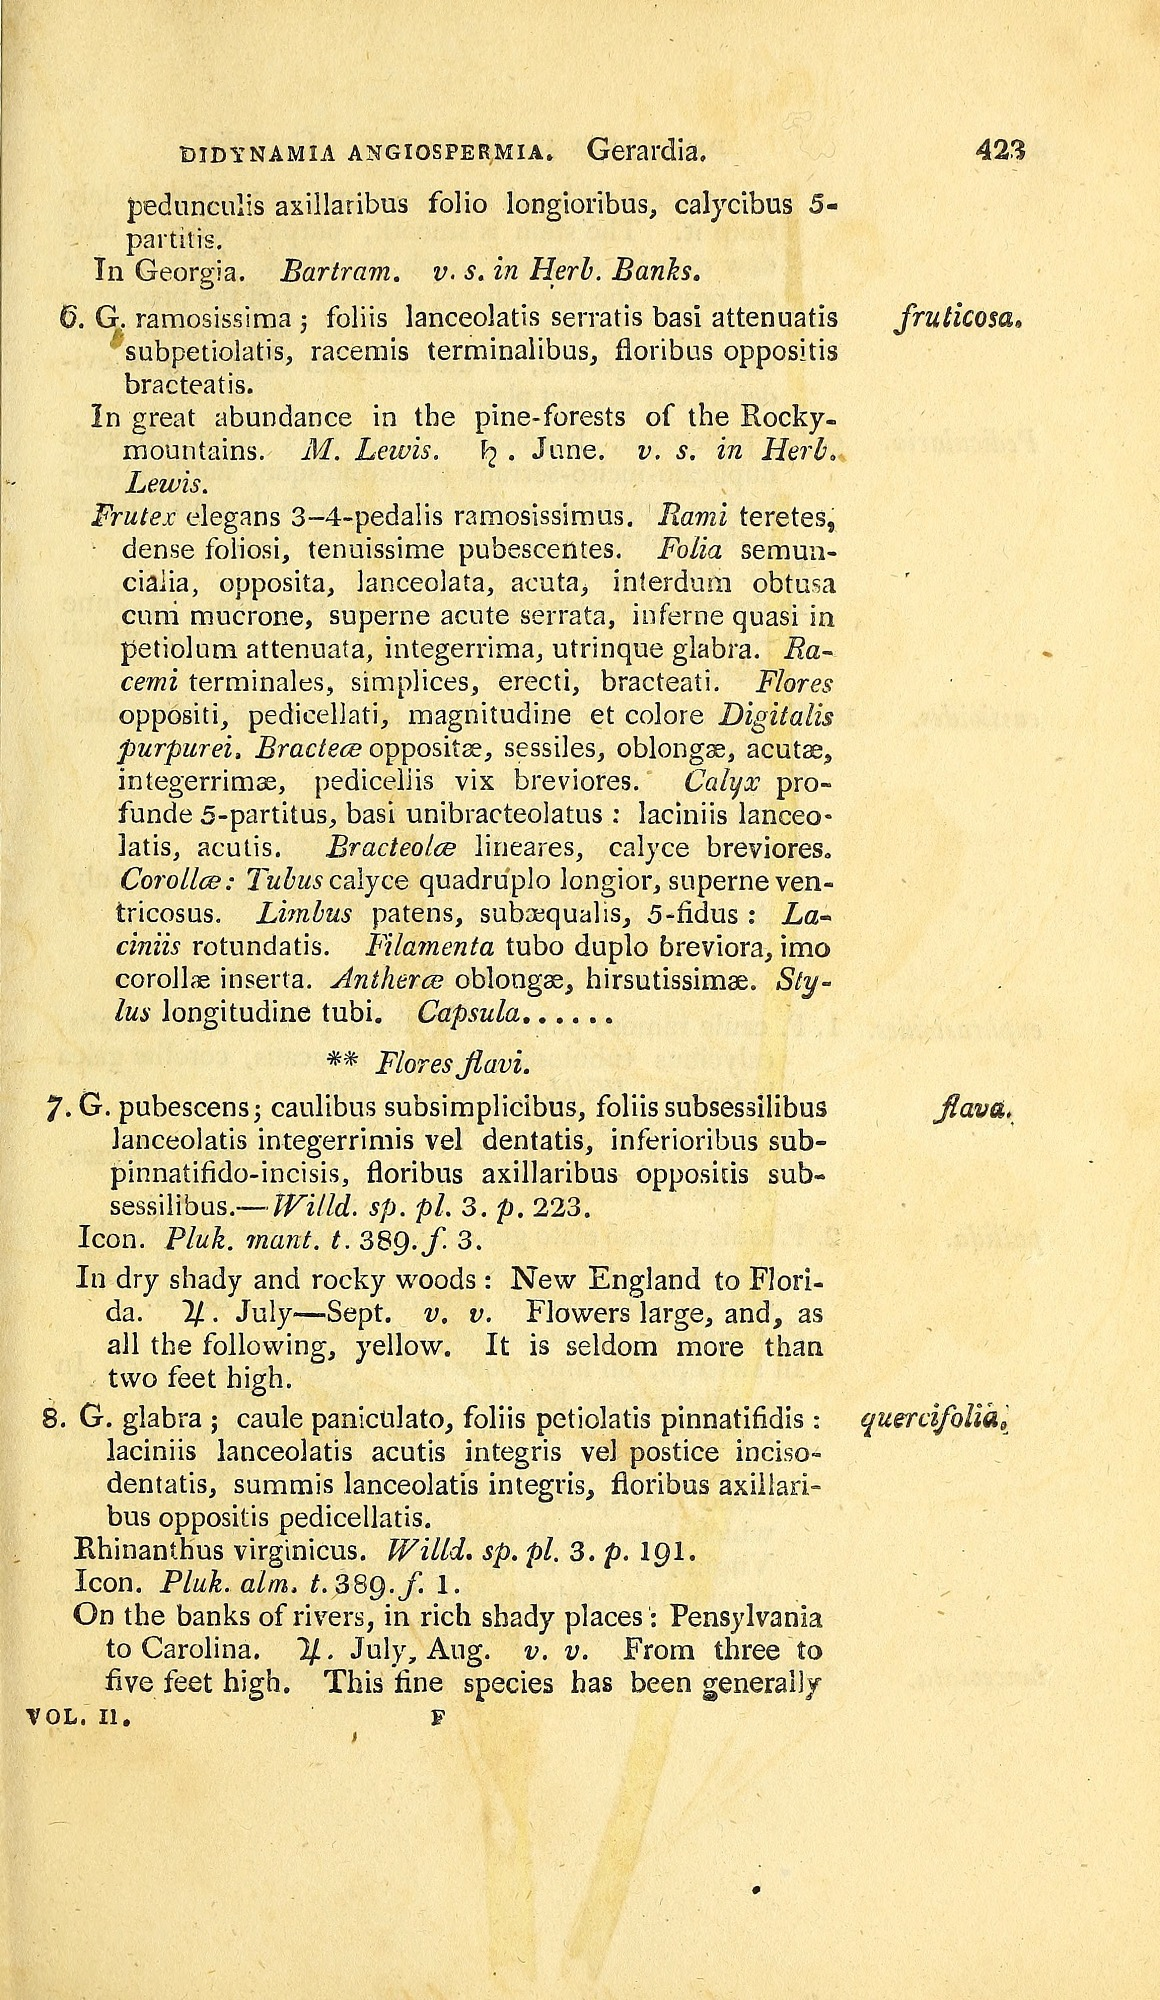 page 423 of Pursh's book with descriptions of several species of gerardia.